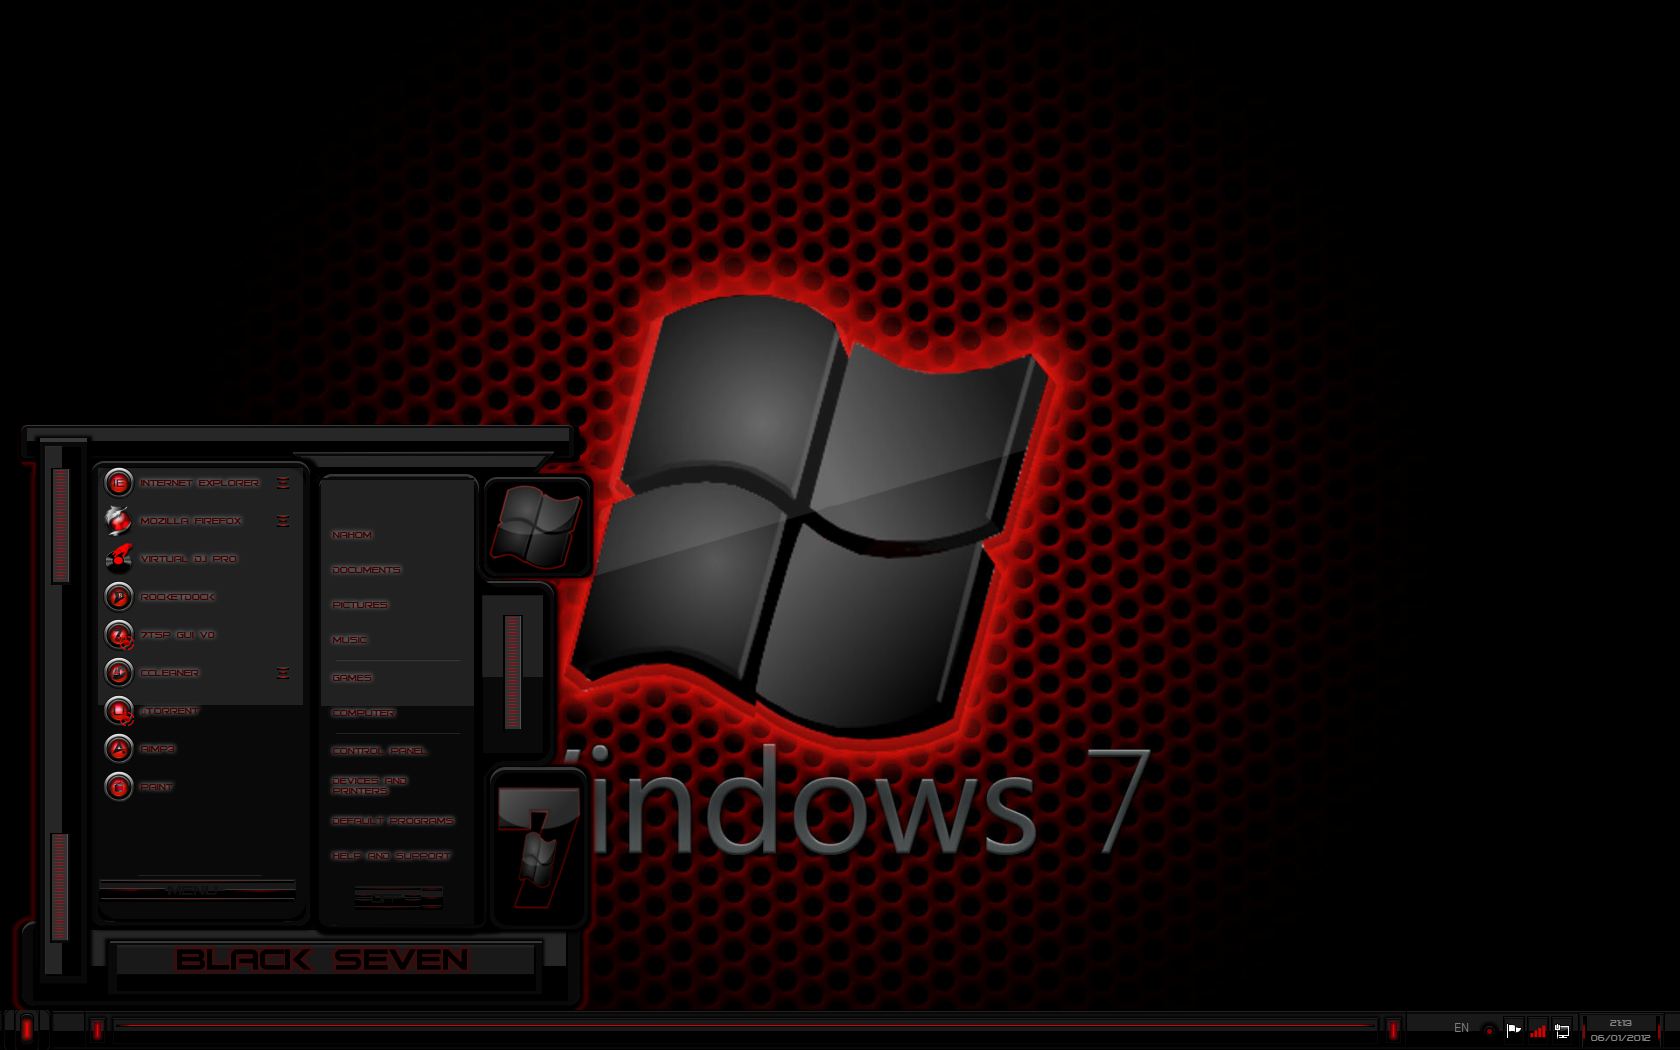 Windows 7 theme black seven (red) by tono3022 on deviantart.